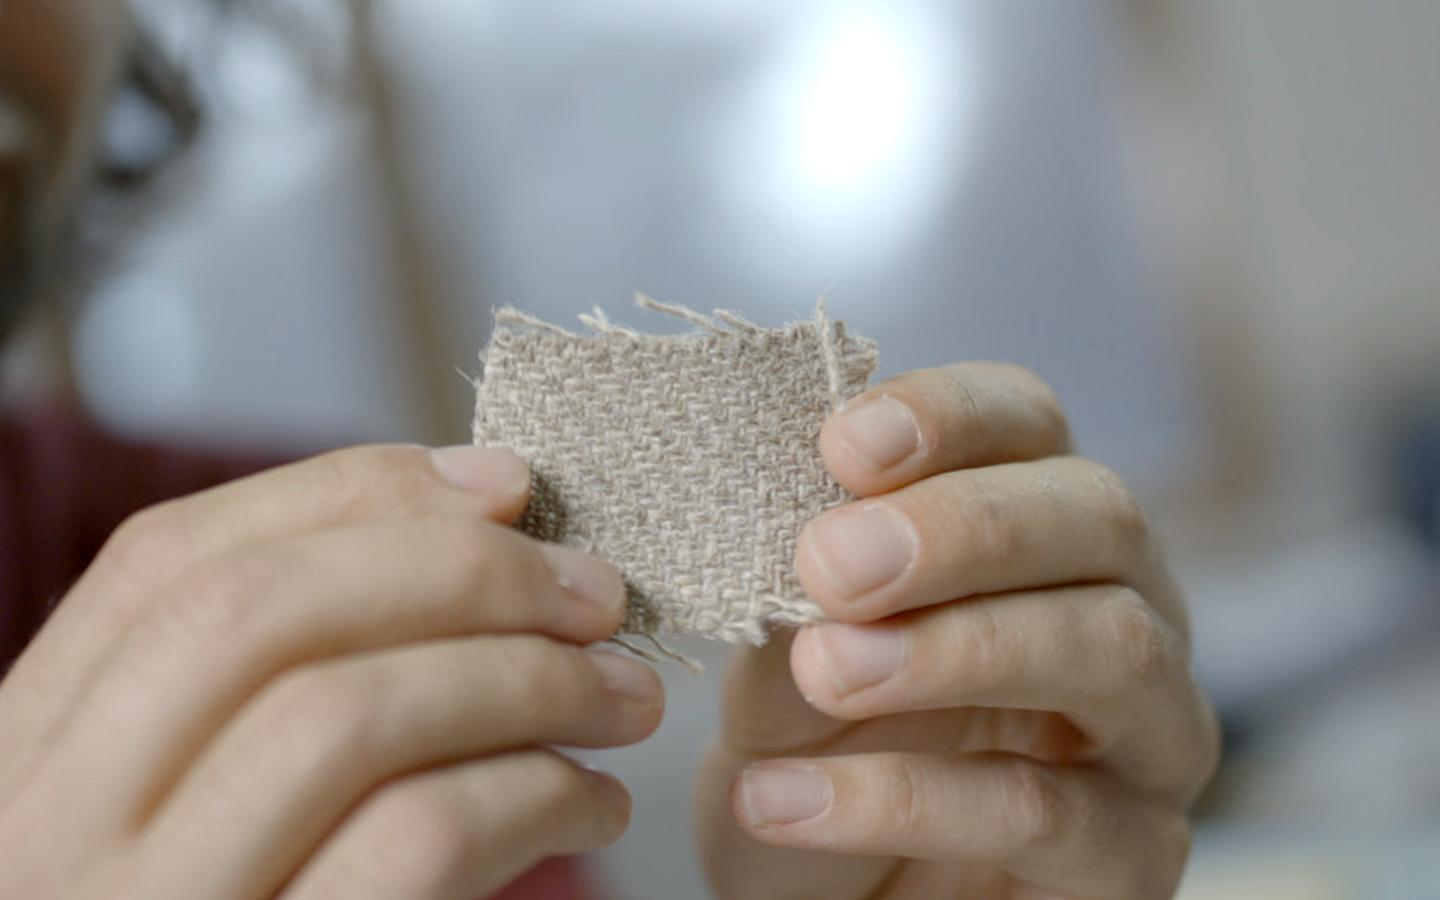 The board's shell is made of woven flax fibers impregnated with a completely bio-based polymer